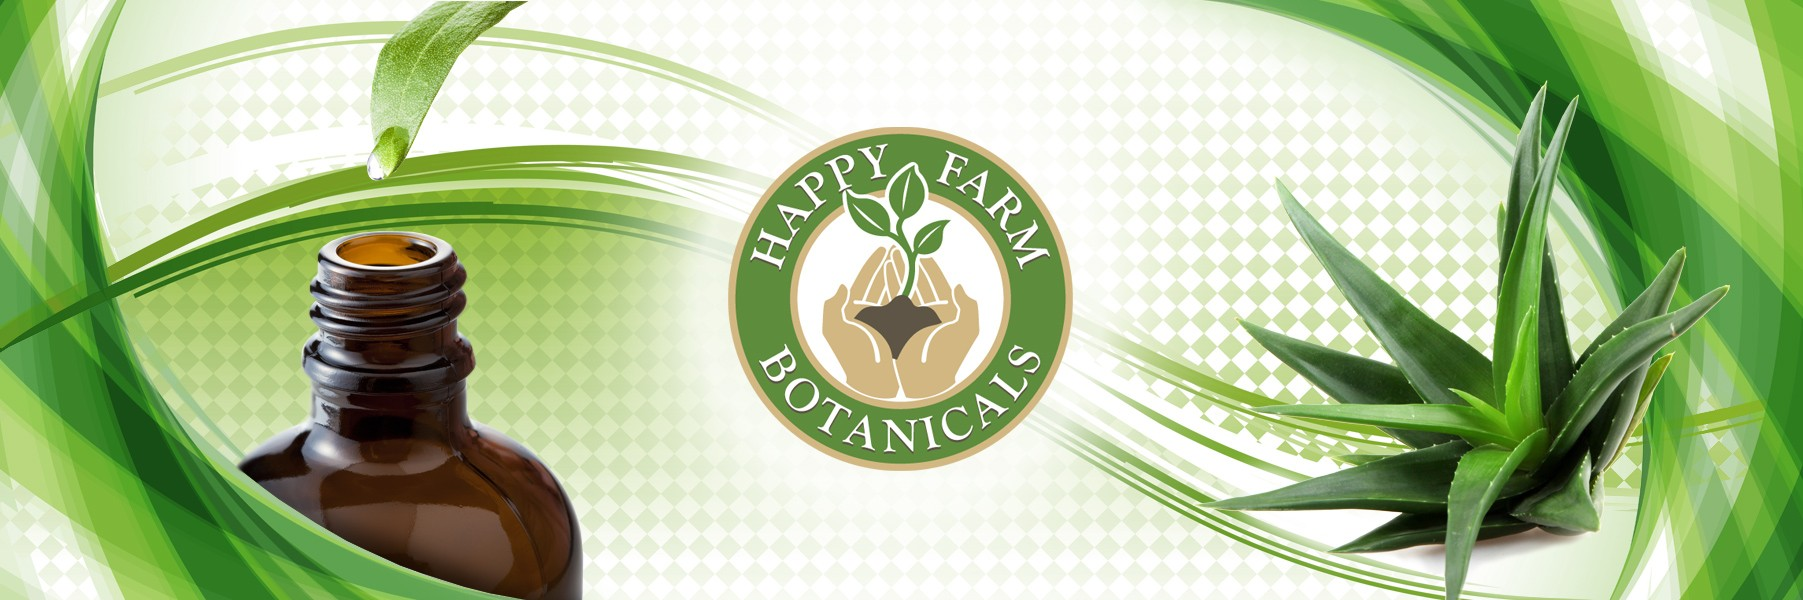 Happy Farm Botanicals